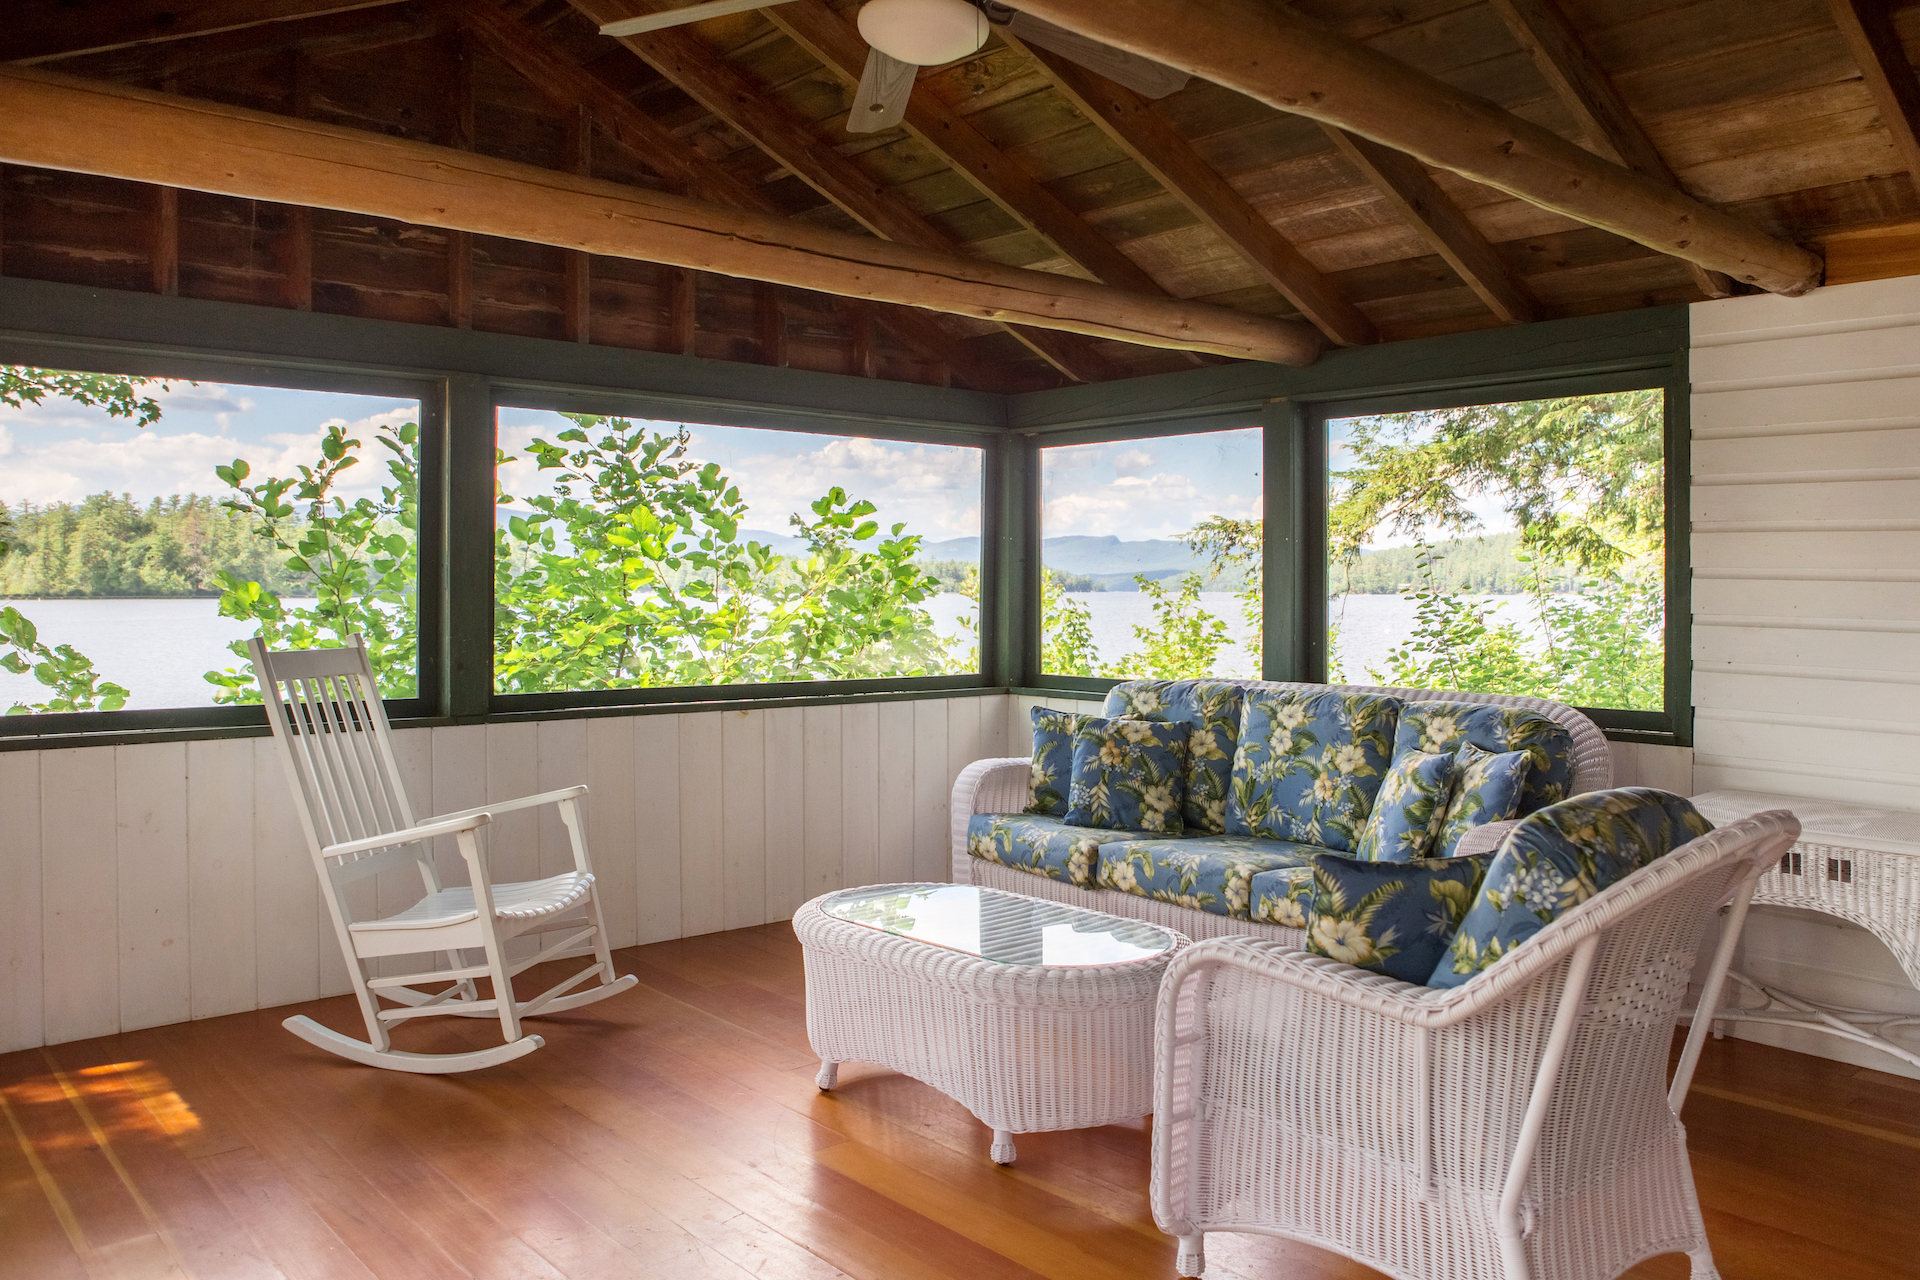 A view inside the sitting area of one of the cottages including a couch and two rocking chairs